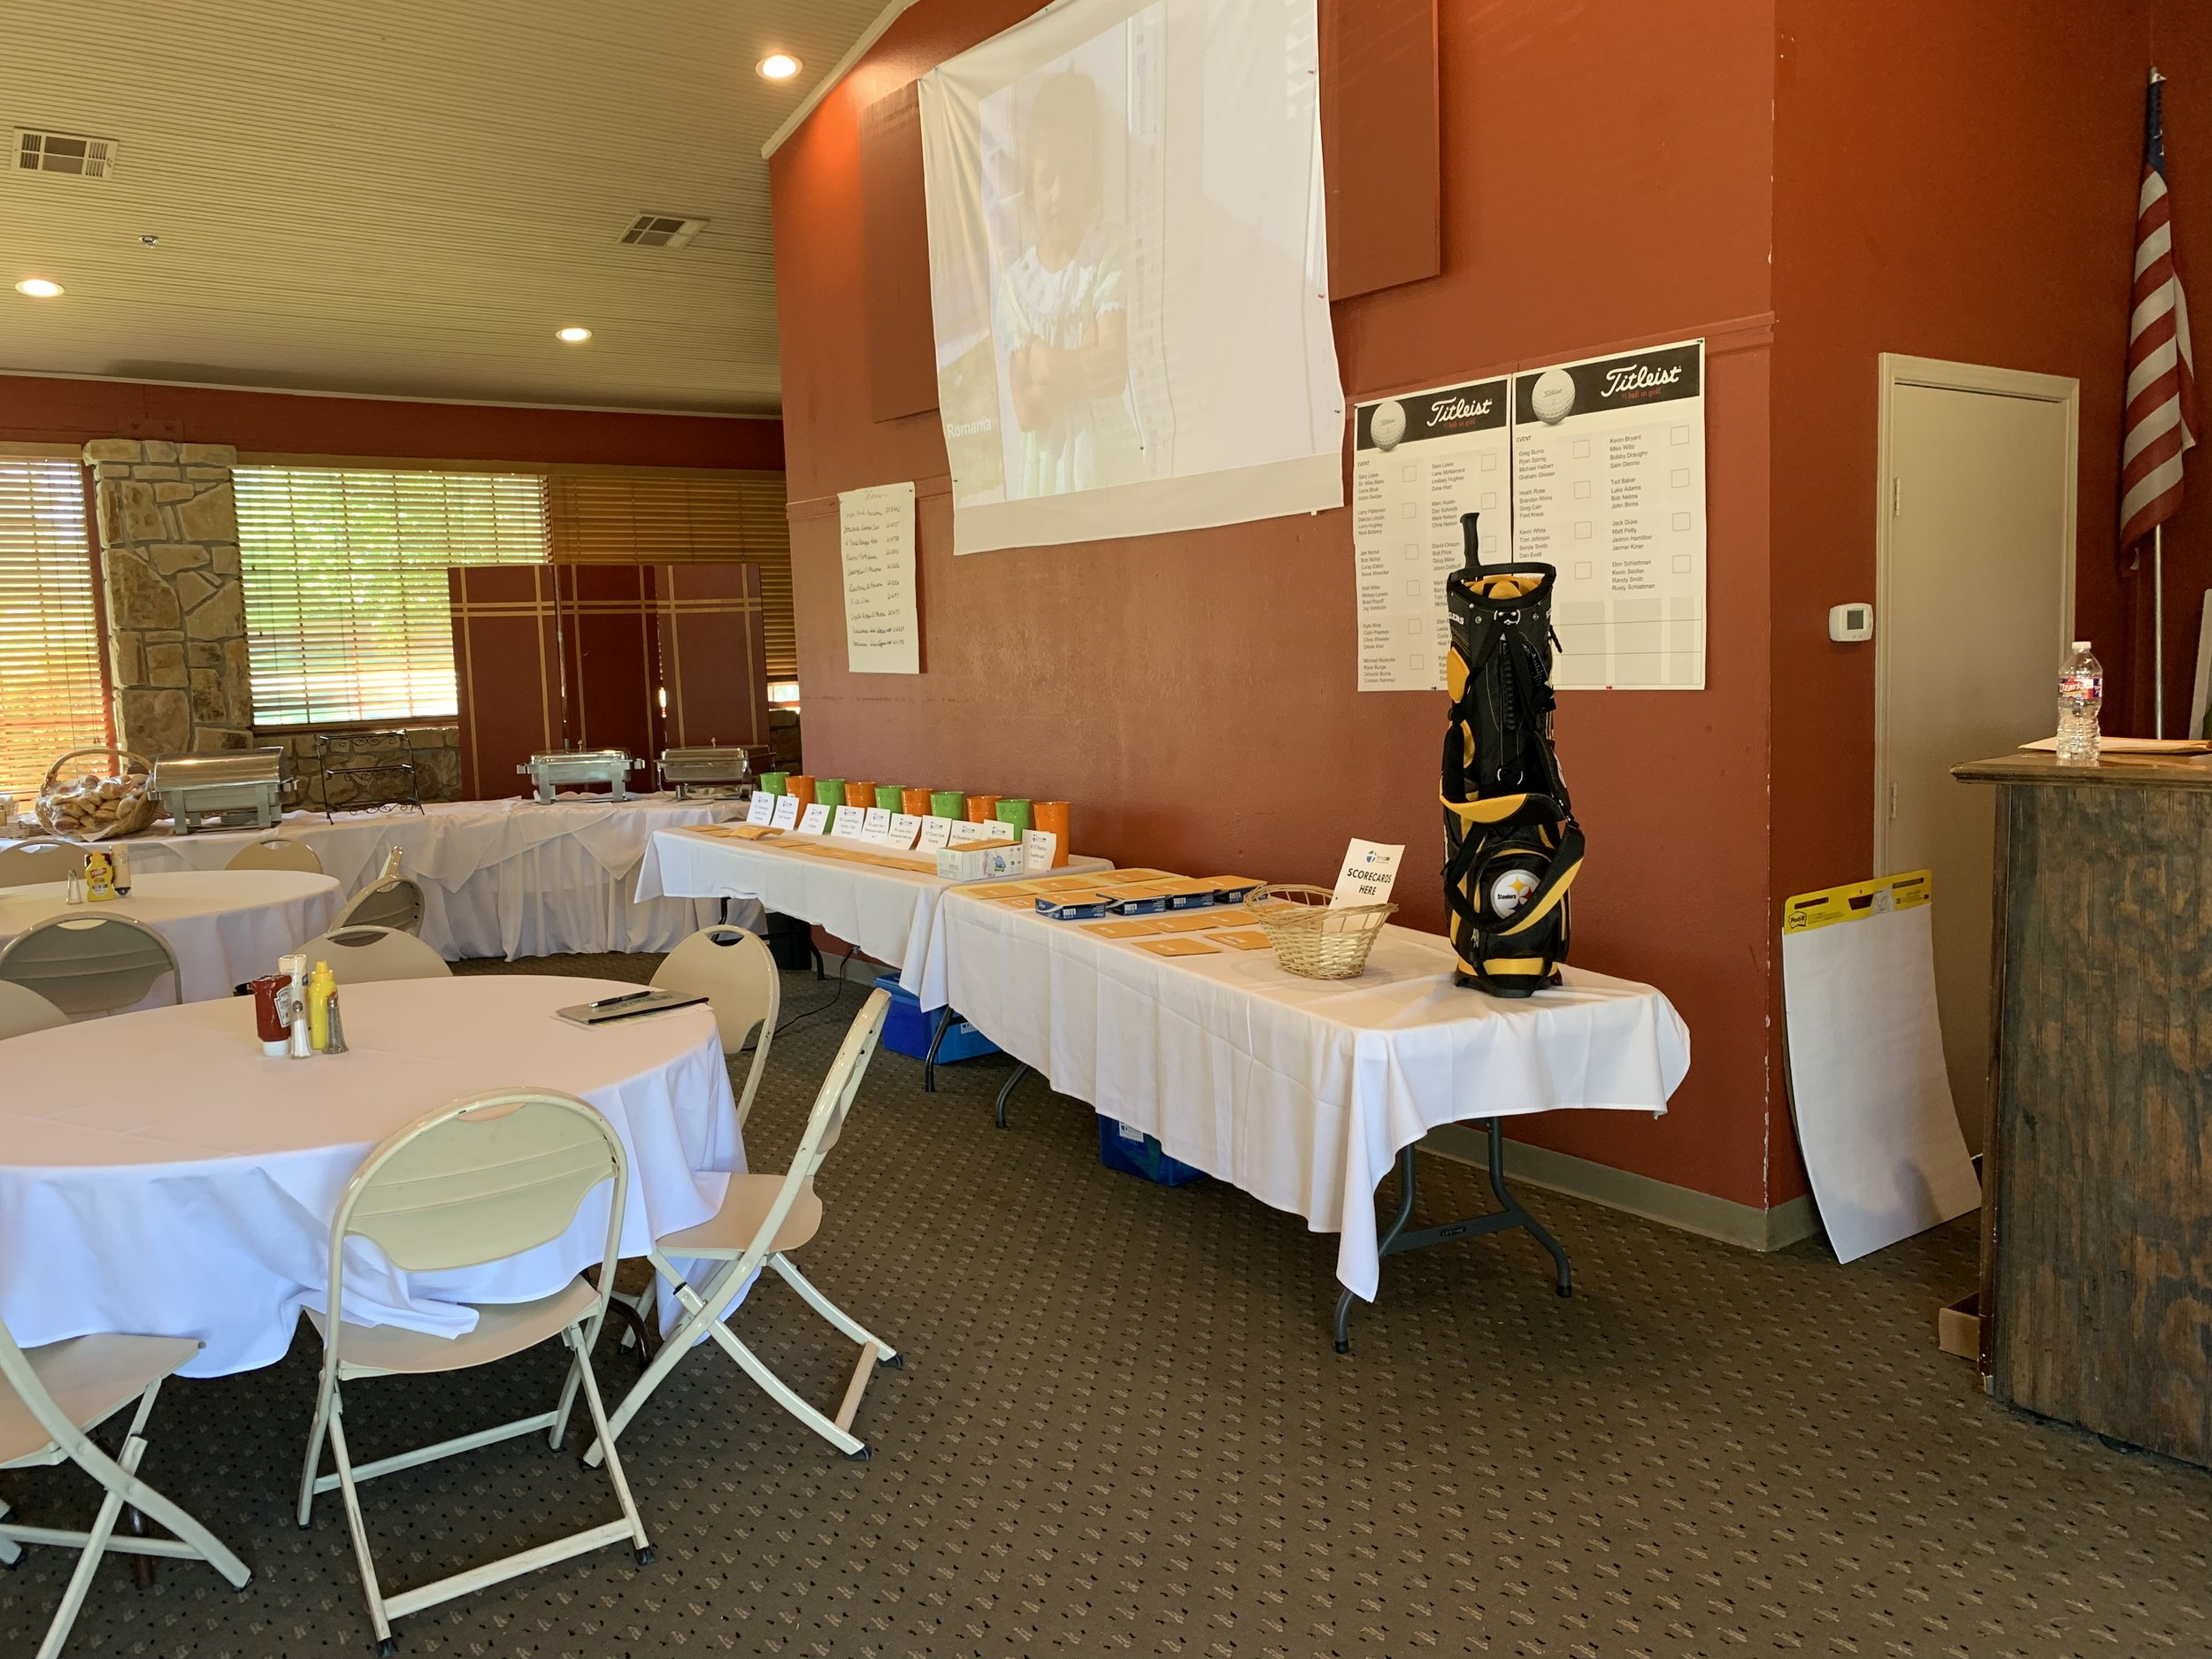 Photo Apr 26, 11 06 42 AM.jpg